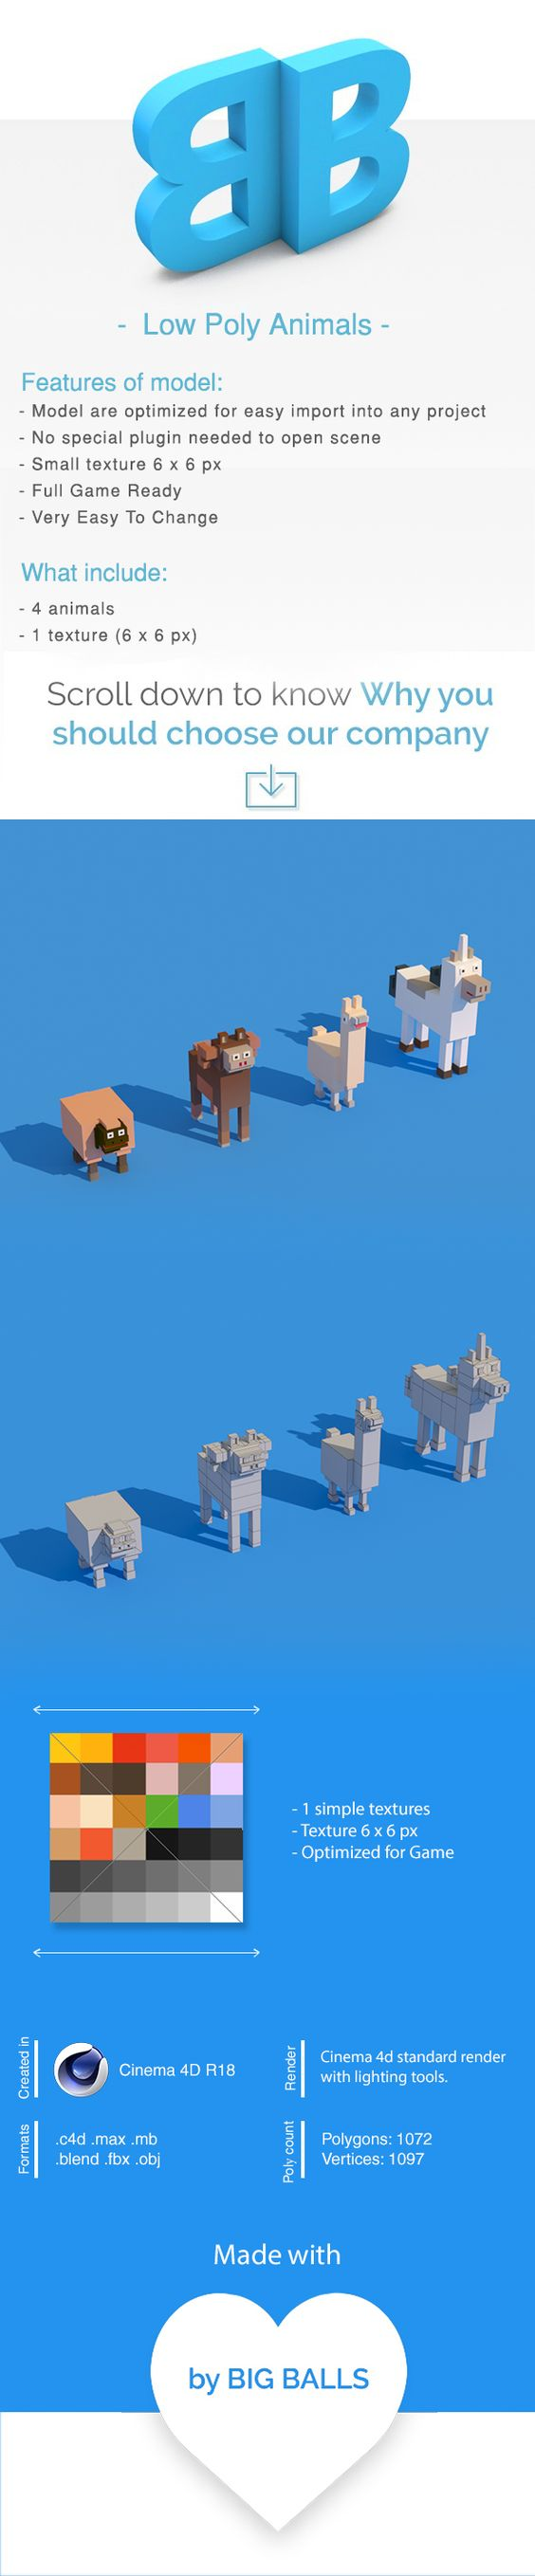 Low Poly Animals - 1